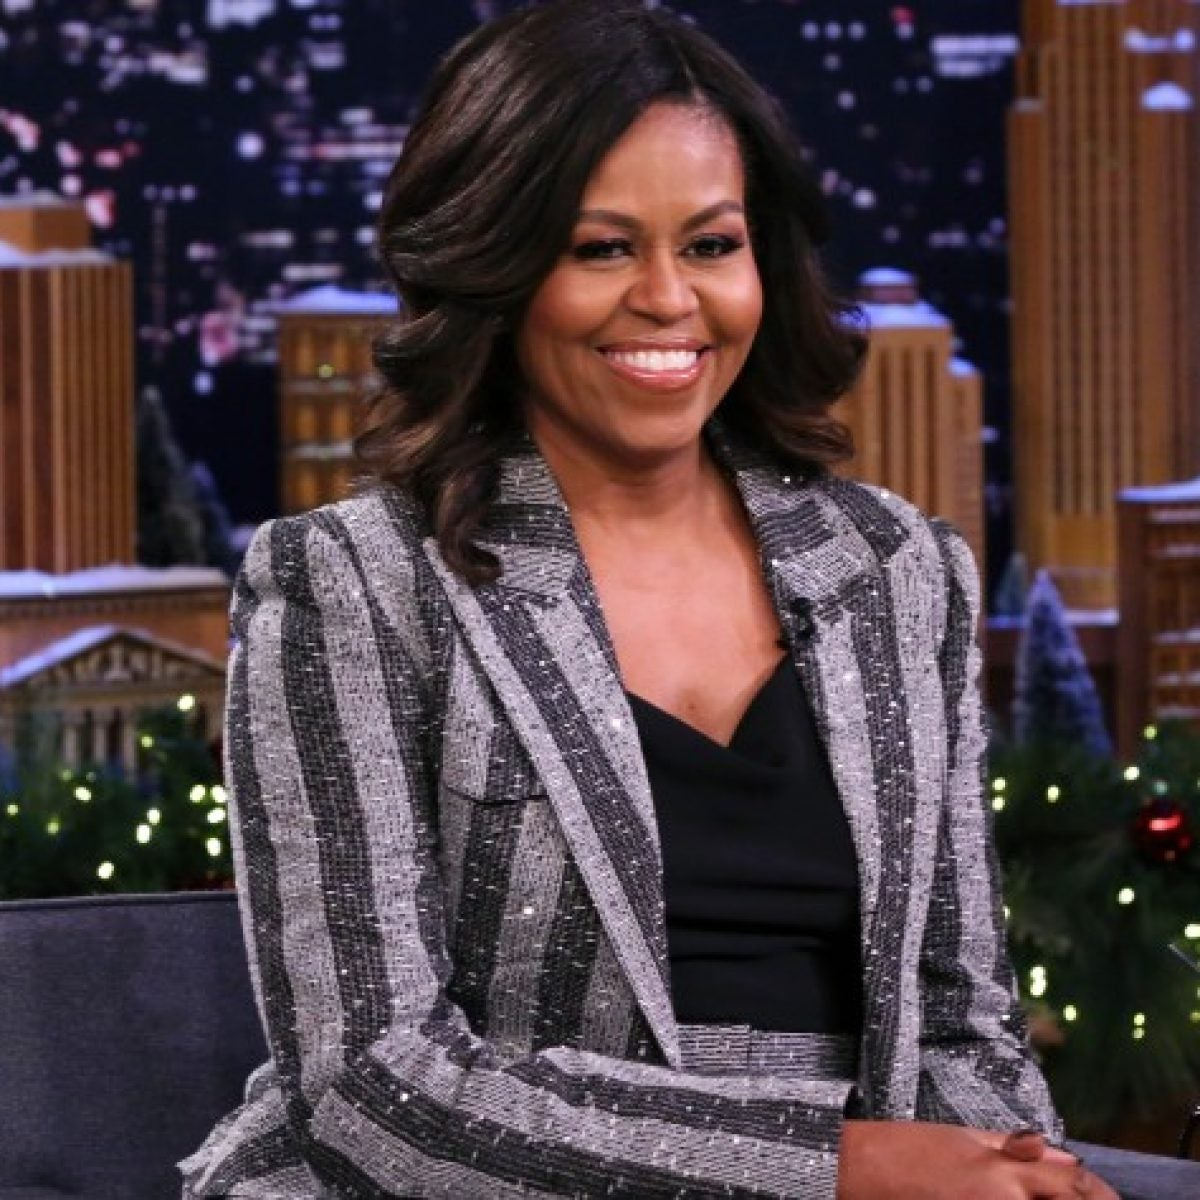 Michelle Obama's Makeup Artist On The Dos And Don'ts Of Beauty Tool Cleaning